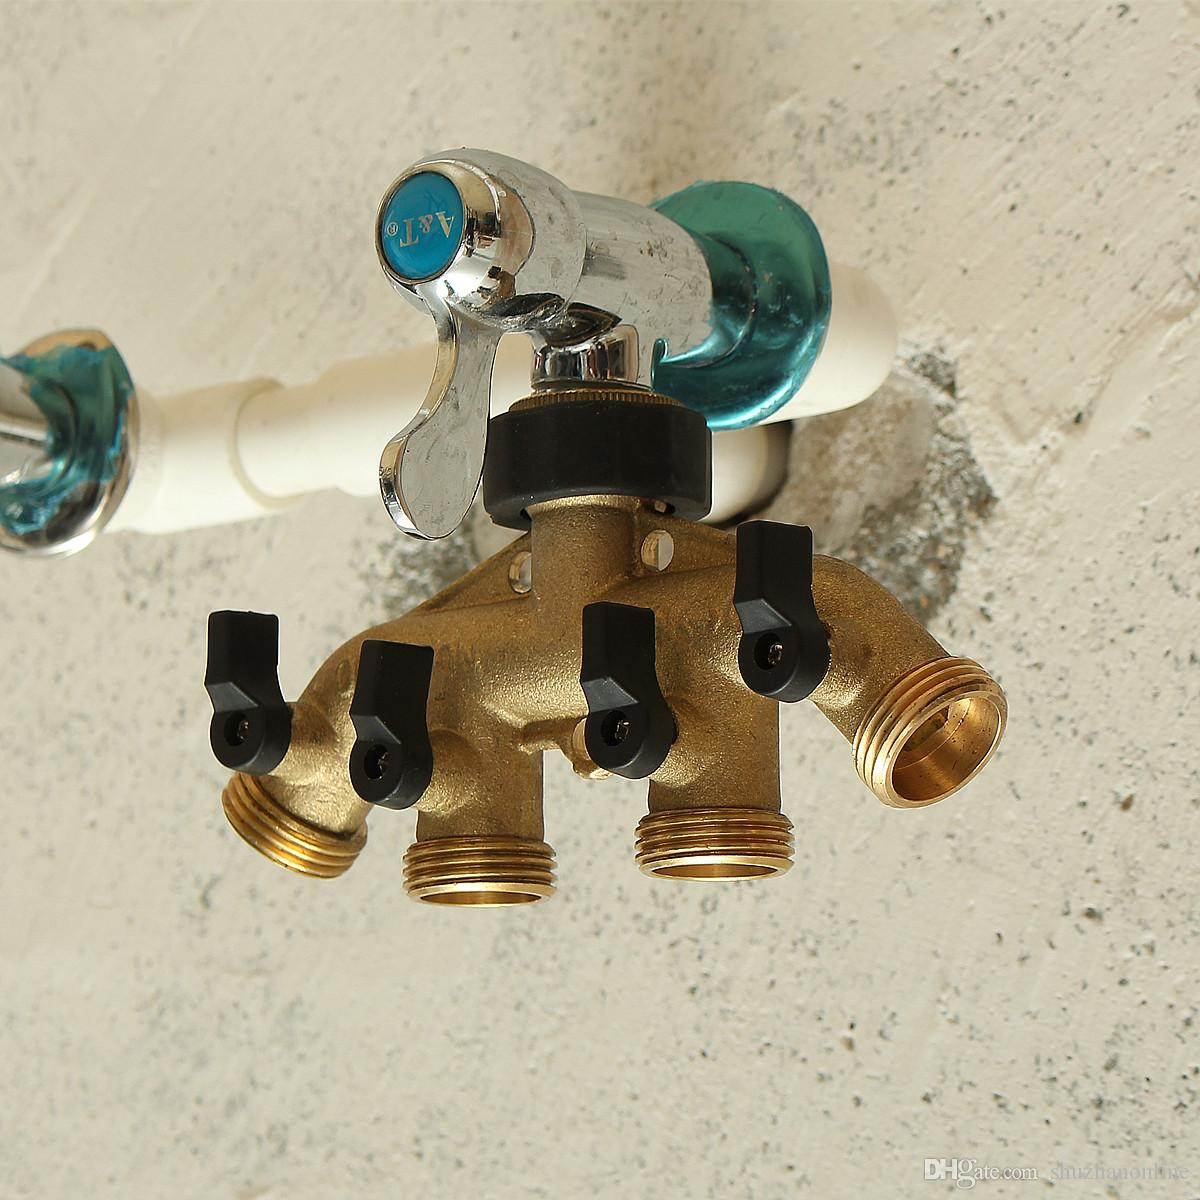 3/4 Inch 4 Way Hose Pipe Switcher Solid Brass Garden Tap Connector Splitter Nozzle Adaptor